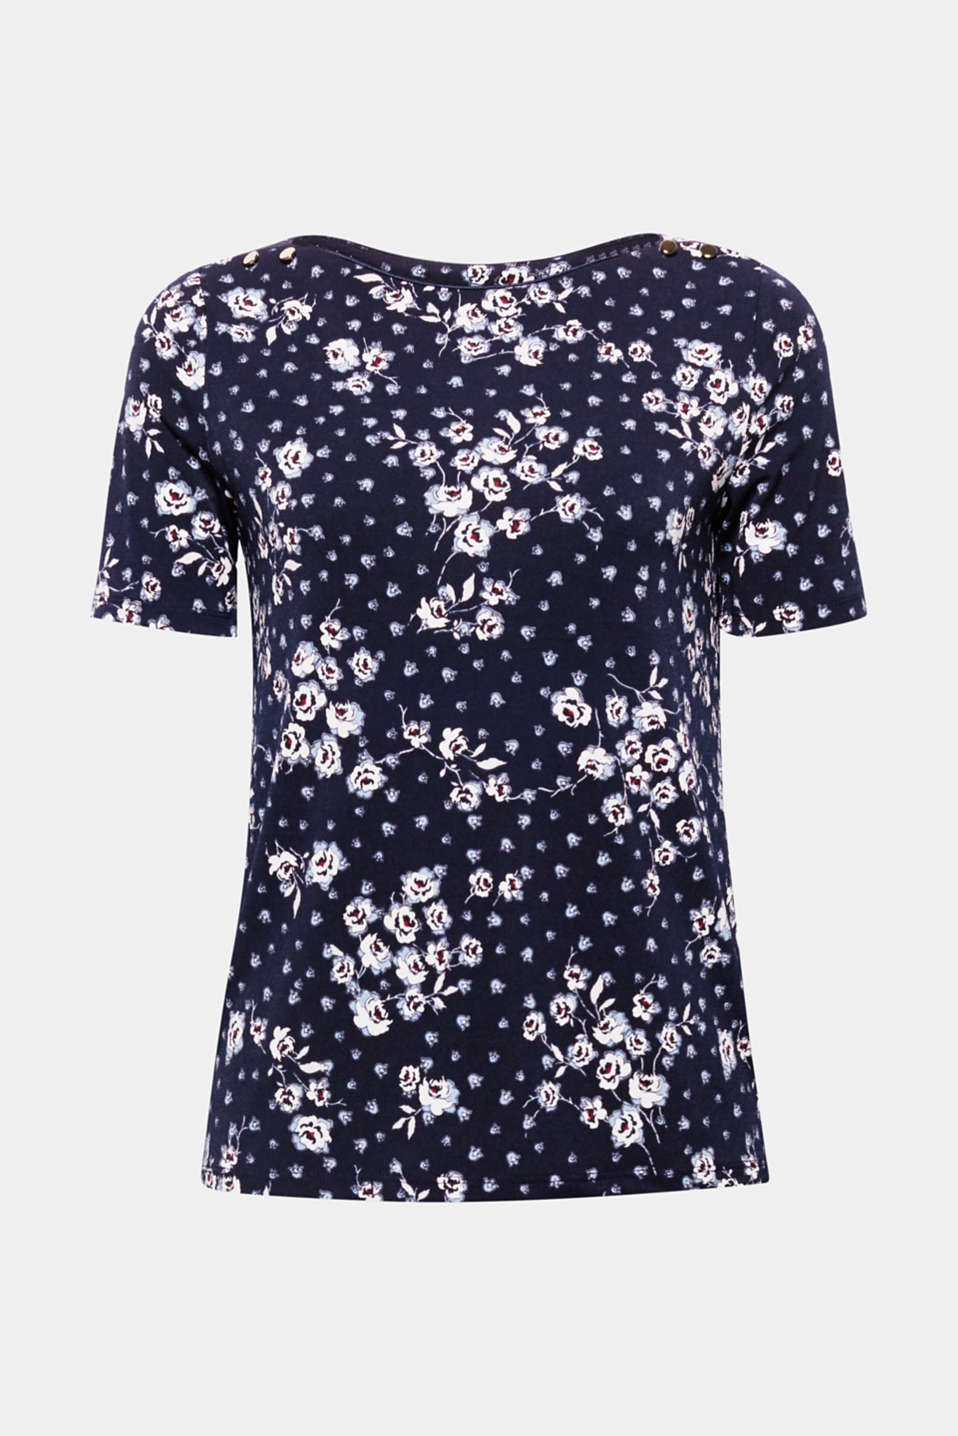 Drapes beautifully and adds floral accents! The fresh floral print adds eye-catching style to this loosely cut top in stretch jersey!